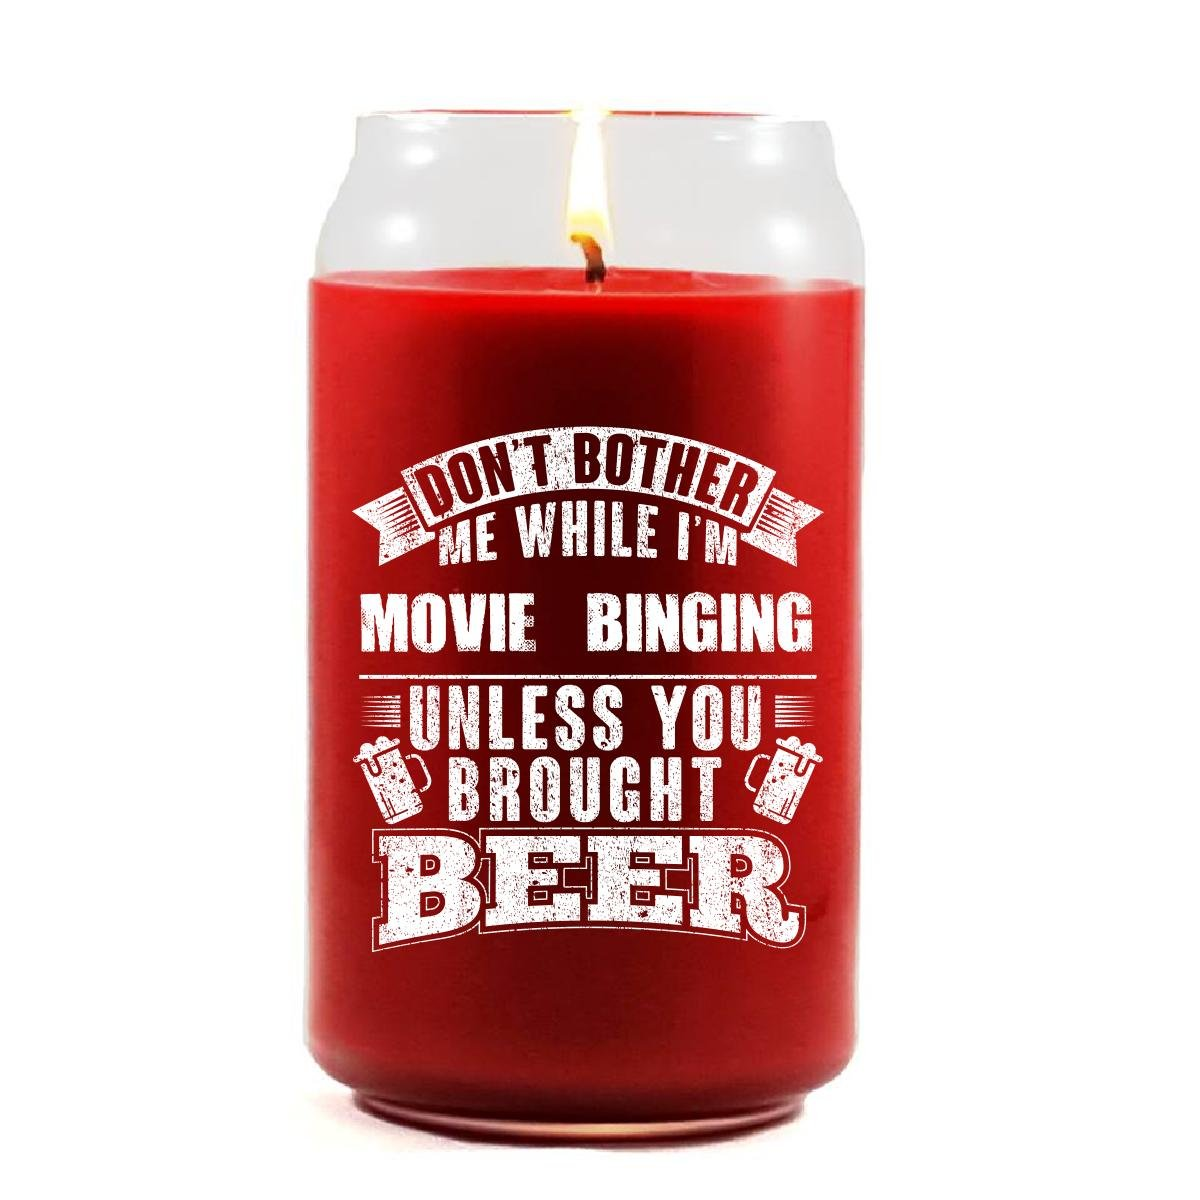 Don't Bother Me I'm MOVIE BINGING Unless You Brought Beer - Scented Candle